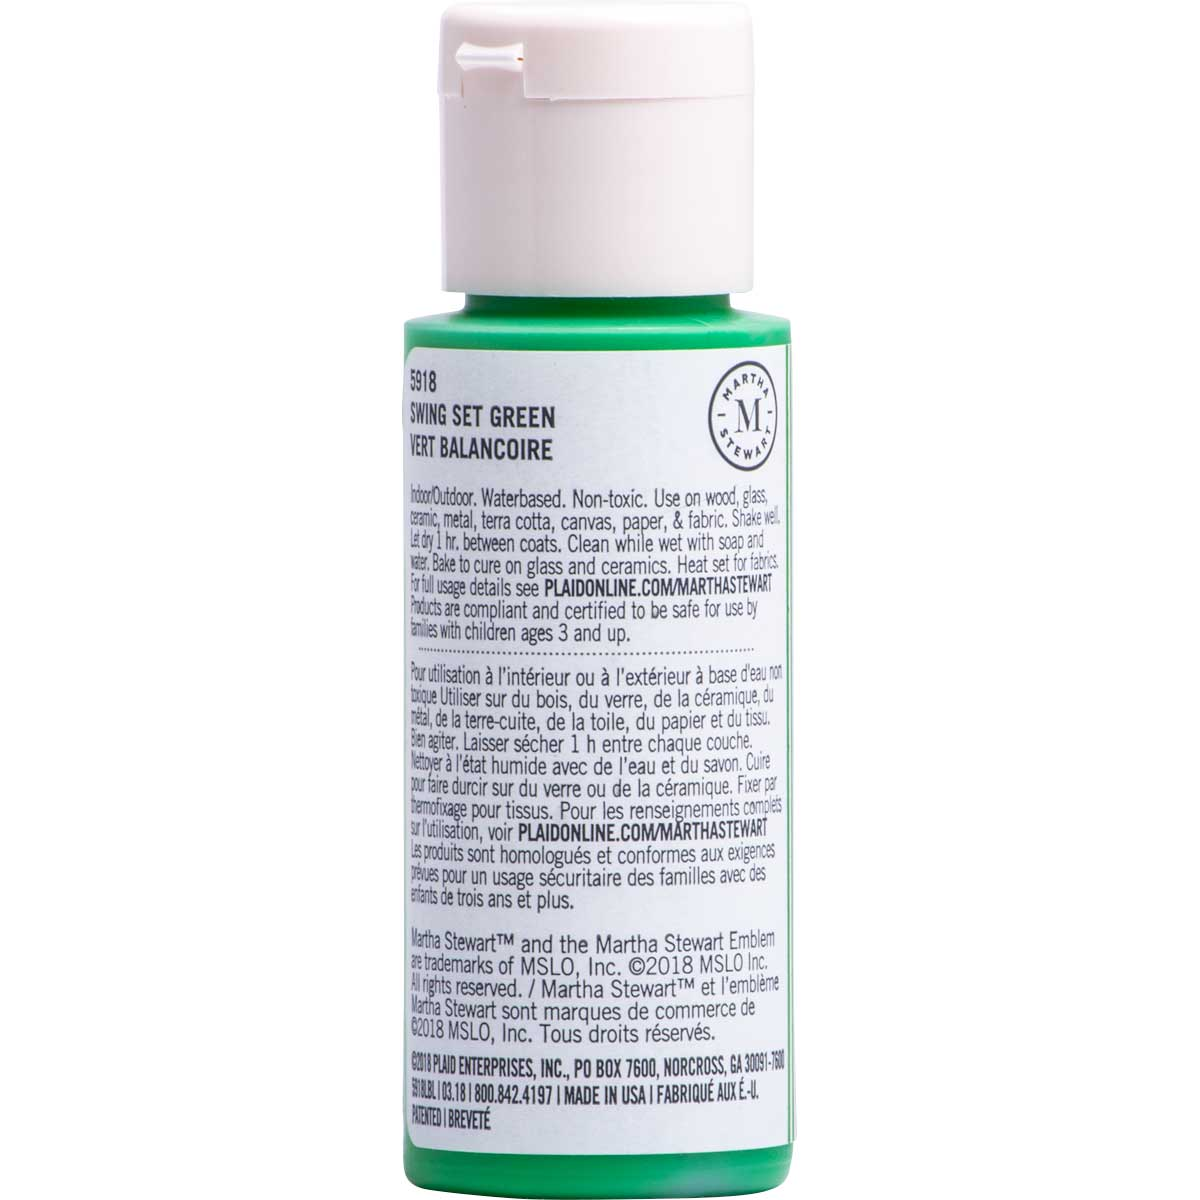 Martha Stewart ® Multi-Surface Satin Acrylic Craft Paint CPSIA - Swing Set Green, 2 oz. - 5918